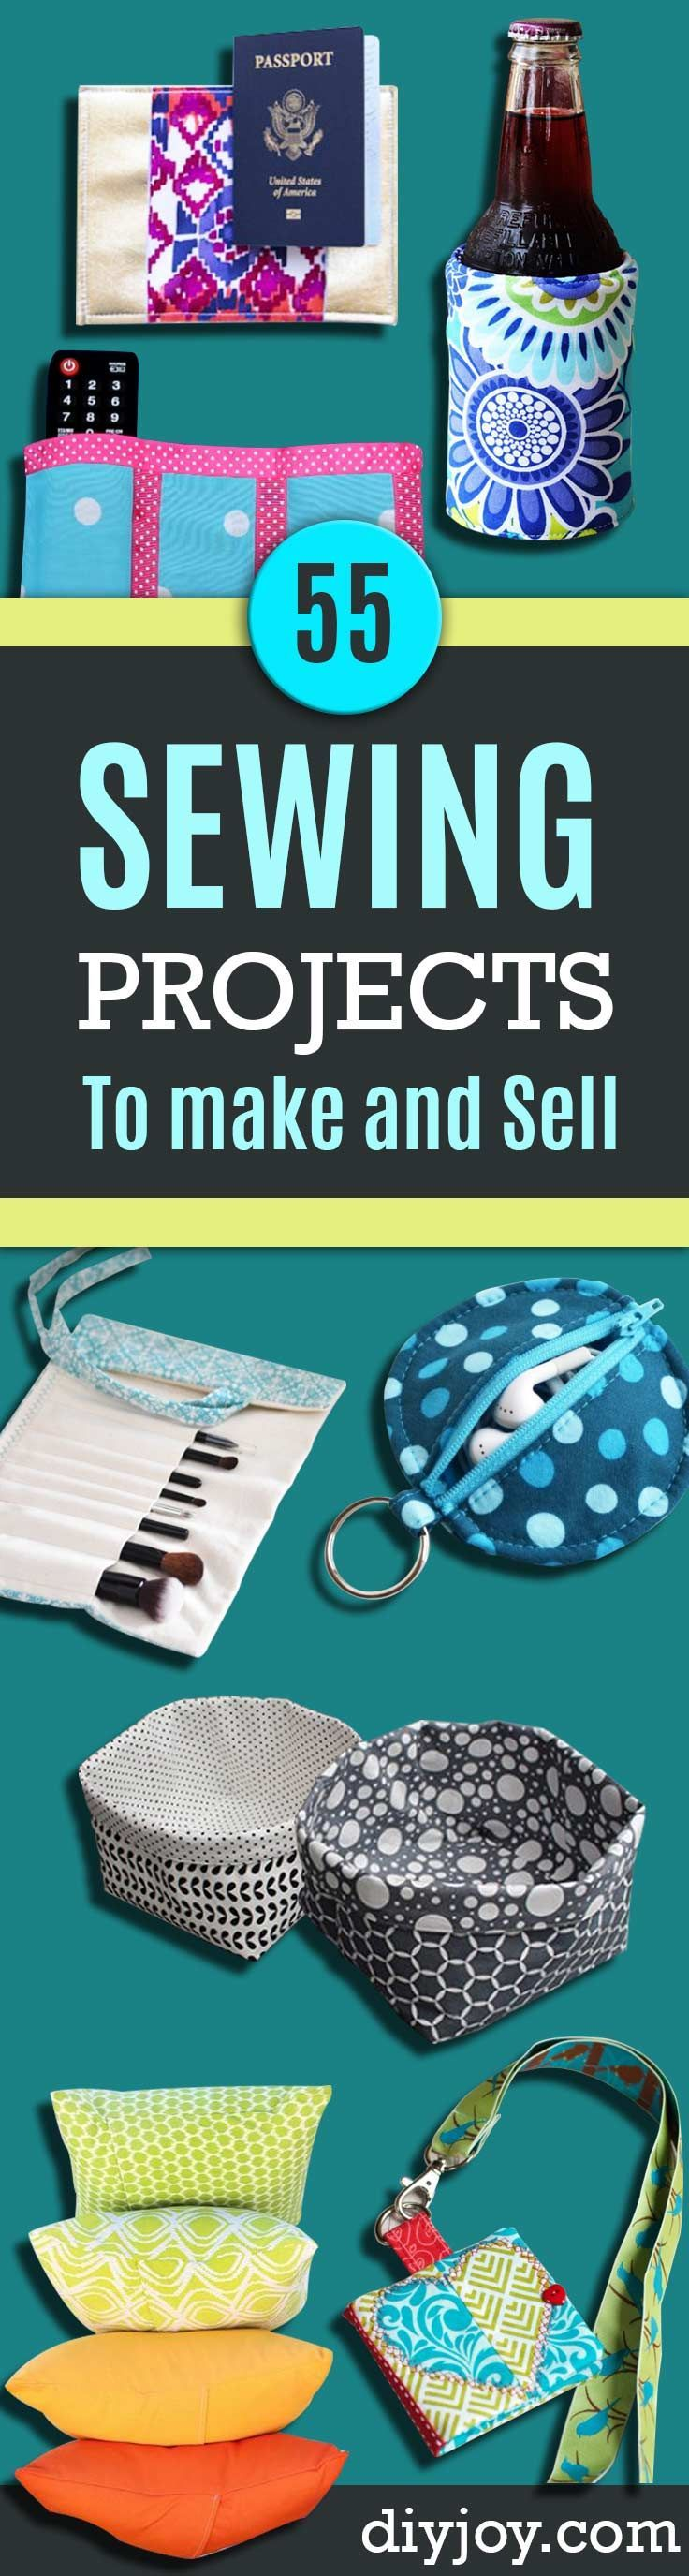 Easy Sewing Projects to Sell  - DIY Sewing Ideas for Your Craft Business. Make Money with these Simple Gift Ideas, Free Patterns, Products from Fabric Scraps, Cute Kids Tutorials http://diyjoy.com/sewing-crafts-to-make-and-sell